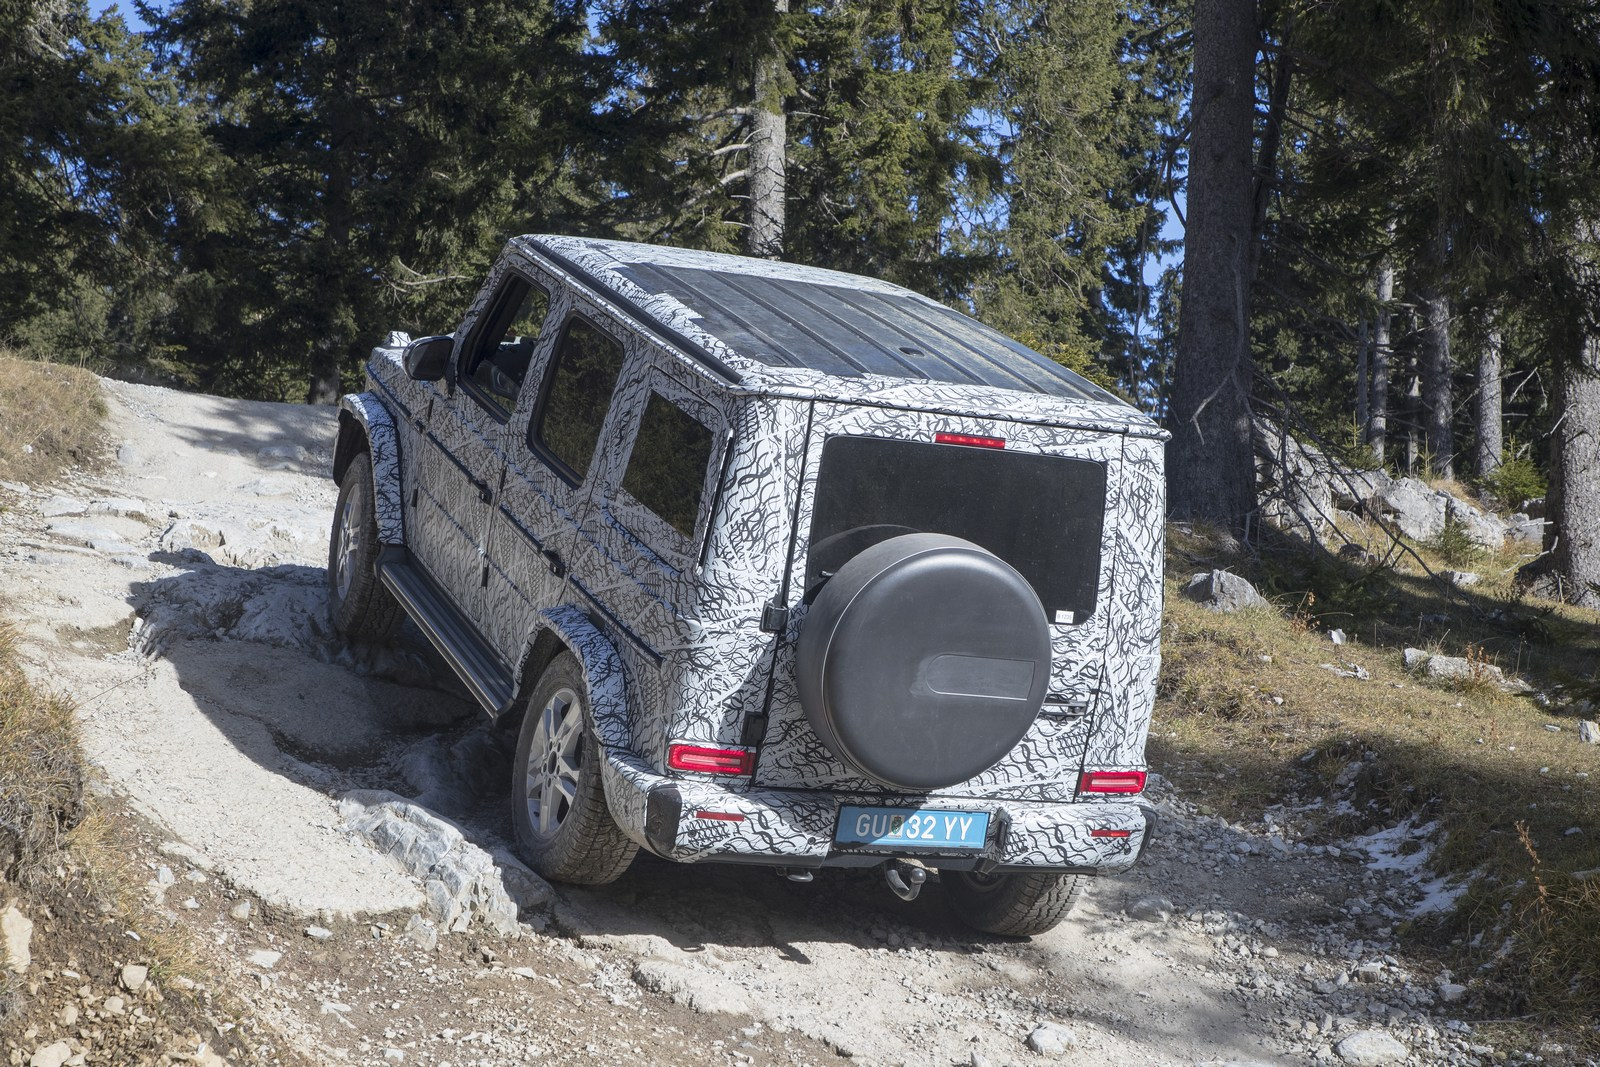 The new G-Class undergoing testing on the Schöckl, a 1,445 meter high mountain near the Austrian city of Graz